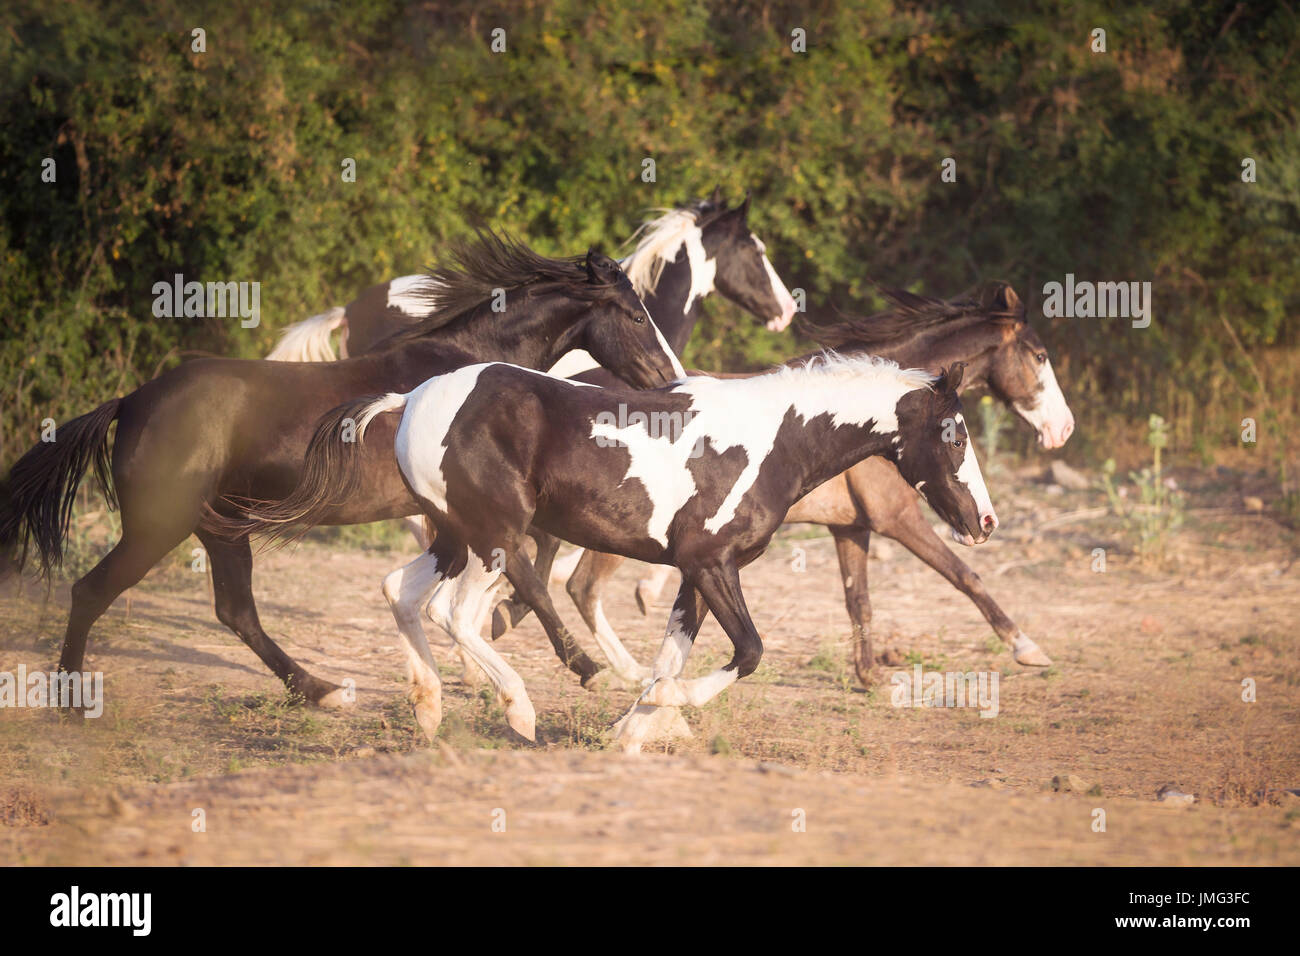 Marwari Horse. Group galloping in dry grass. India - Stock Image